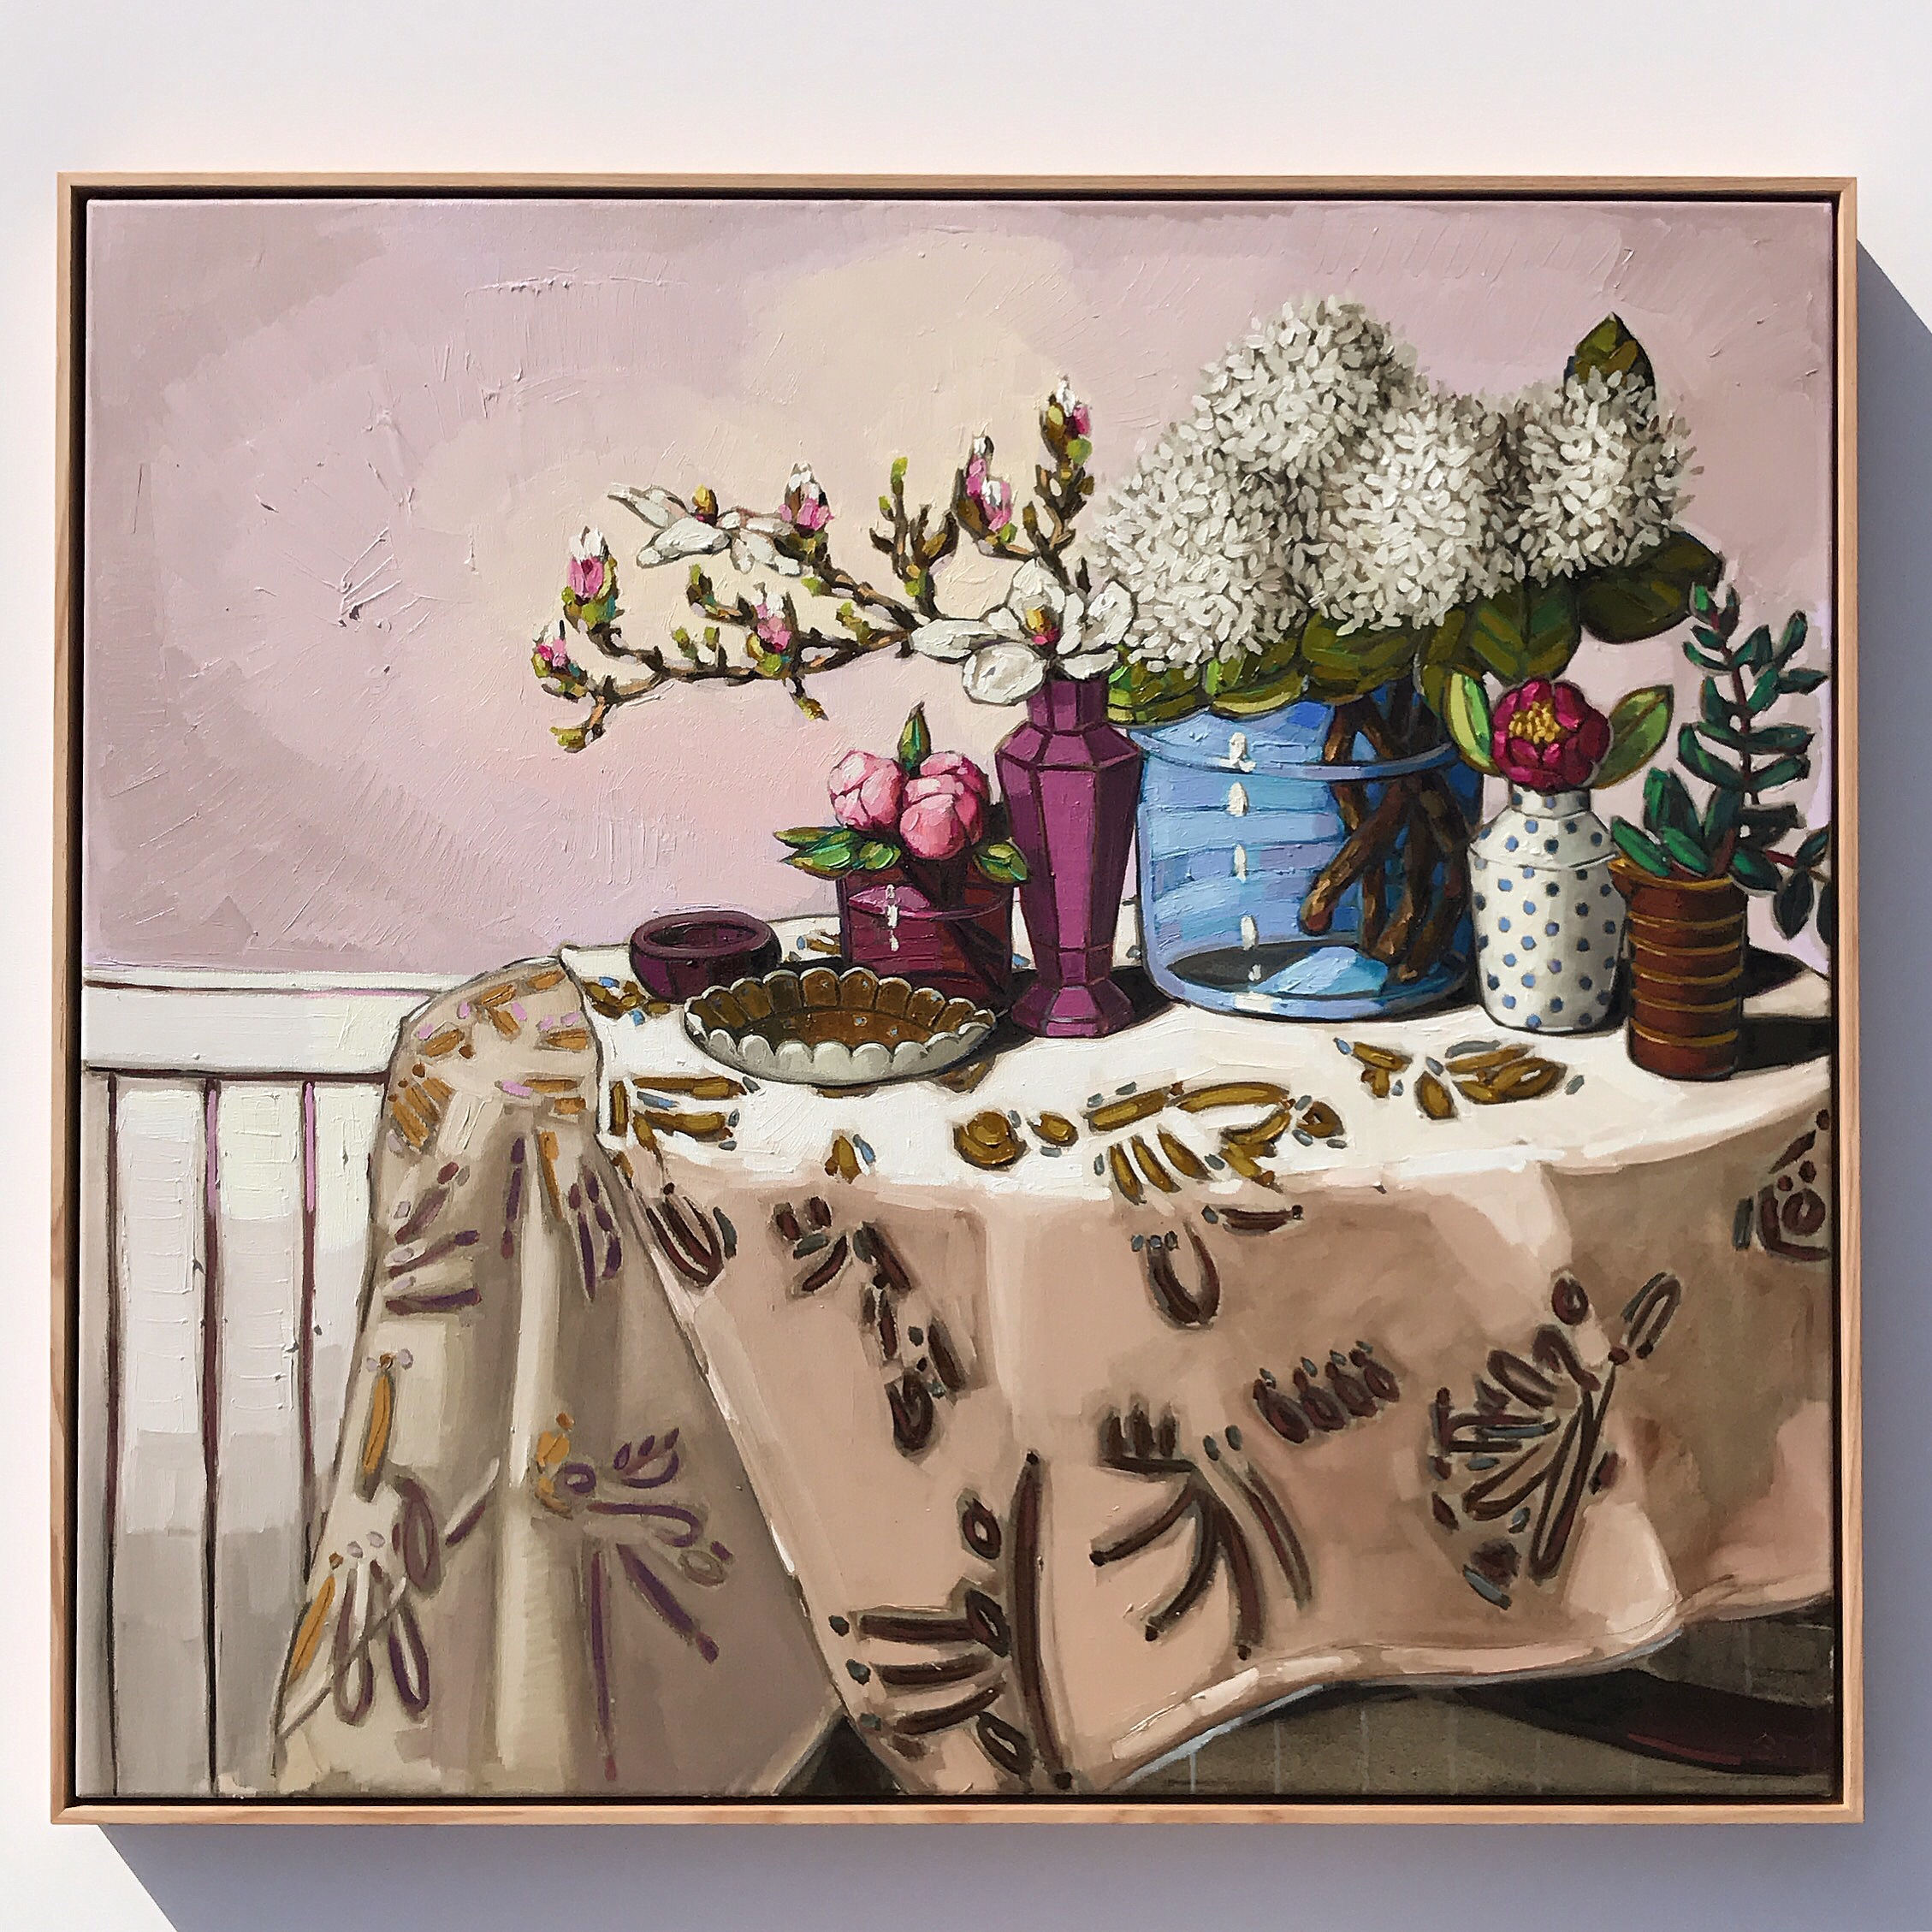 07_17 'Cloth, Both 1Sides, Dining Table'  103x113cm $2,995